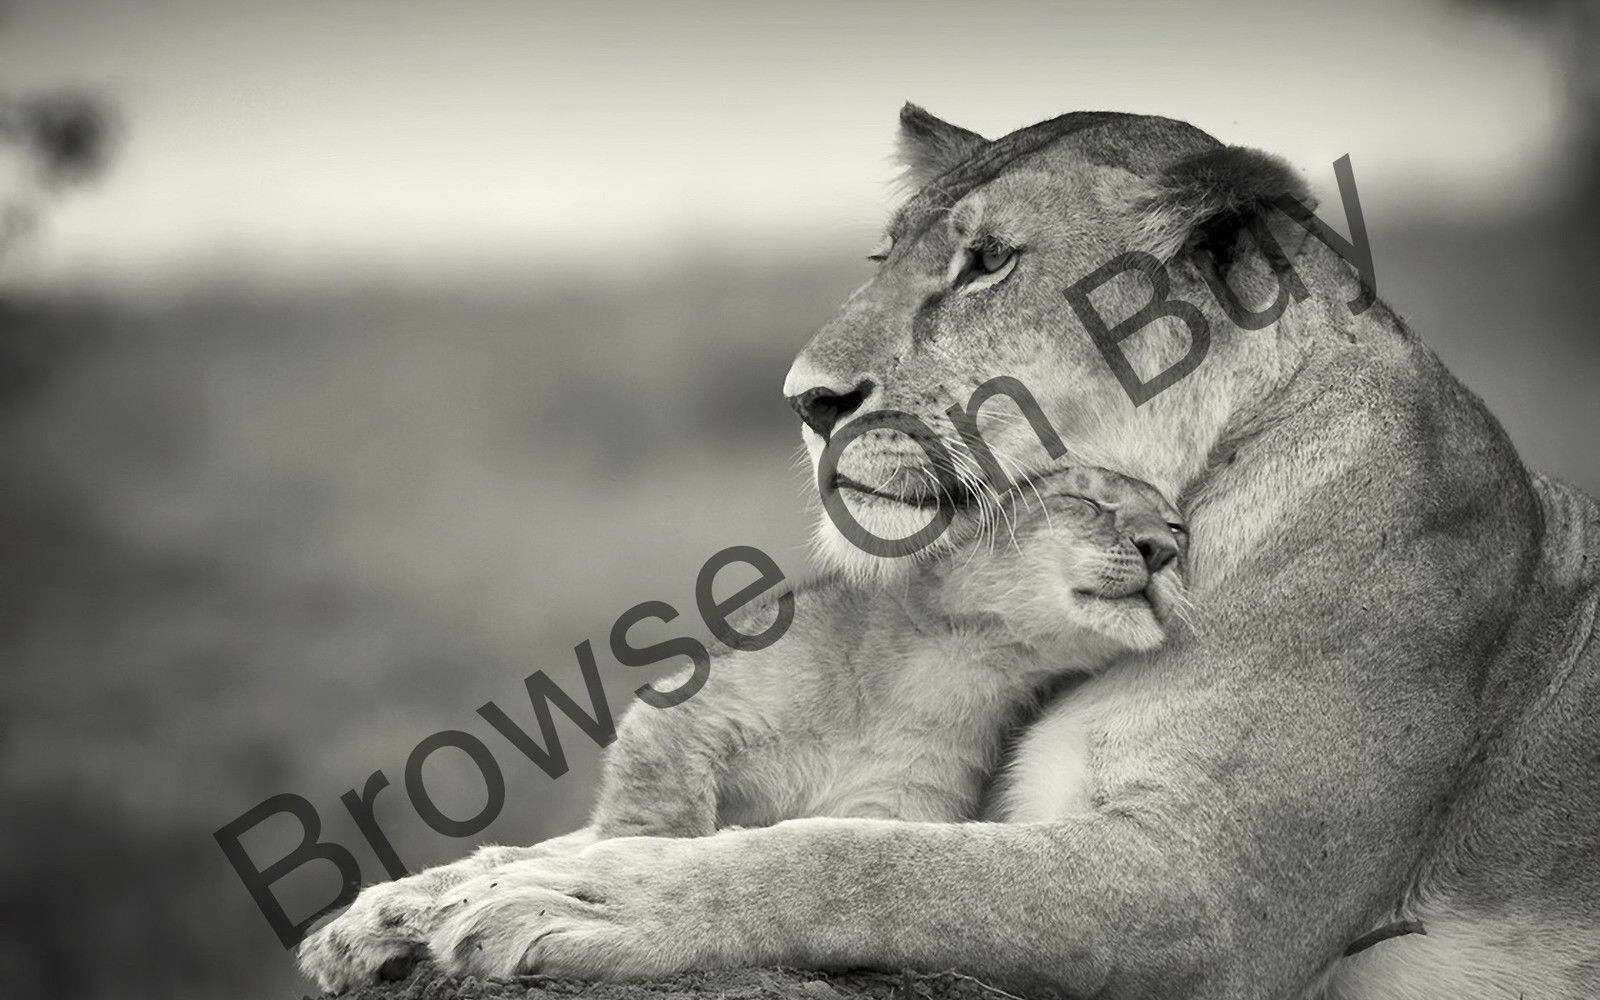 00433 LIONESS AND BABY CUB IMAGE Wall Print POSTER AU